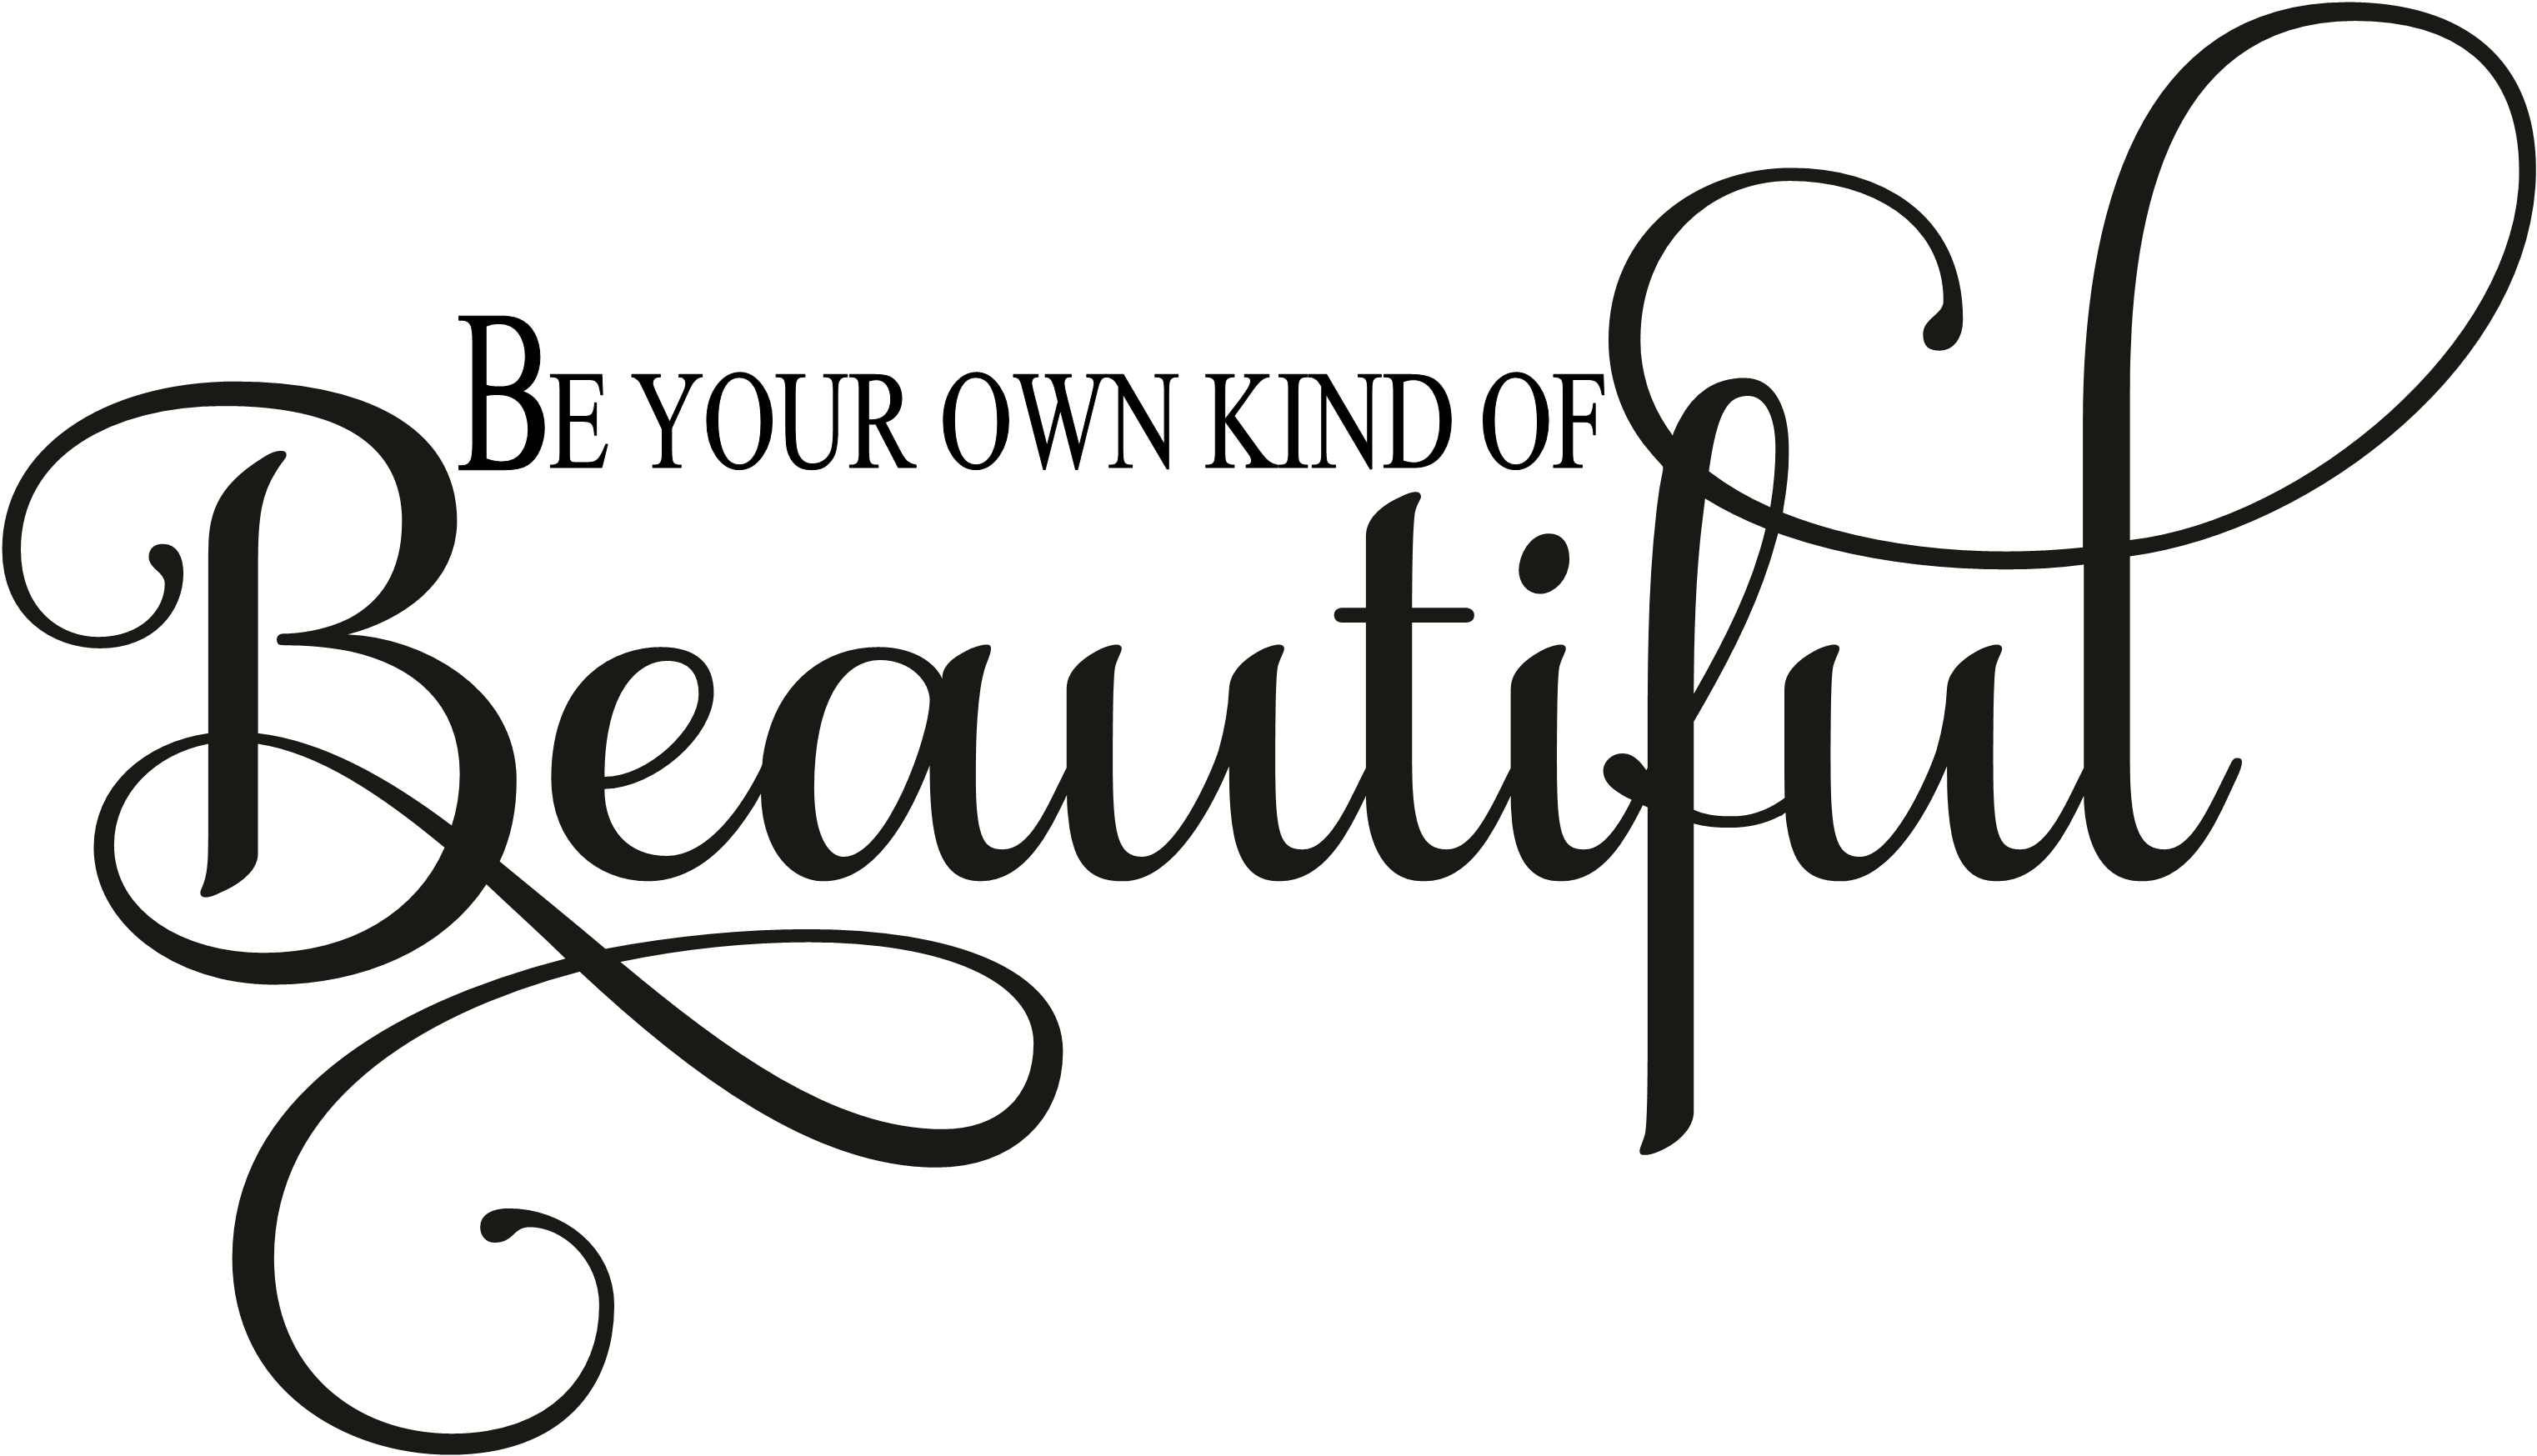 Abi 2017 Handtuch Be Your Own Kind Of Beautiful Vinyl Wall Decal Quote